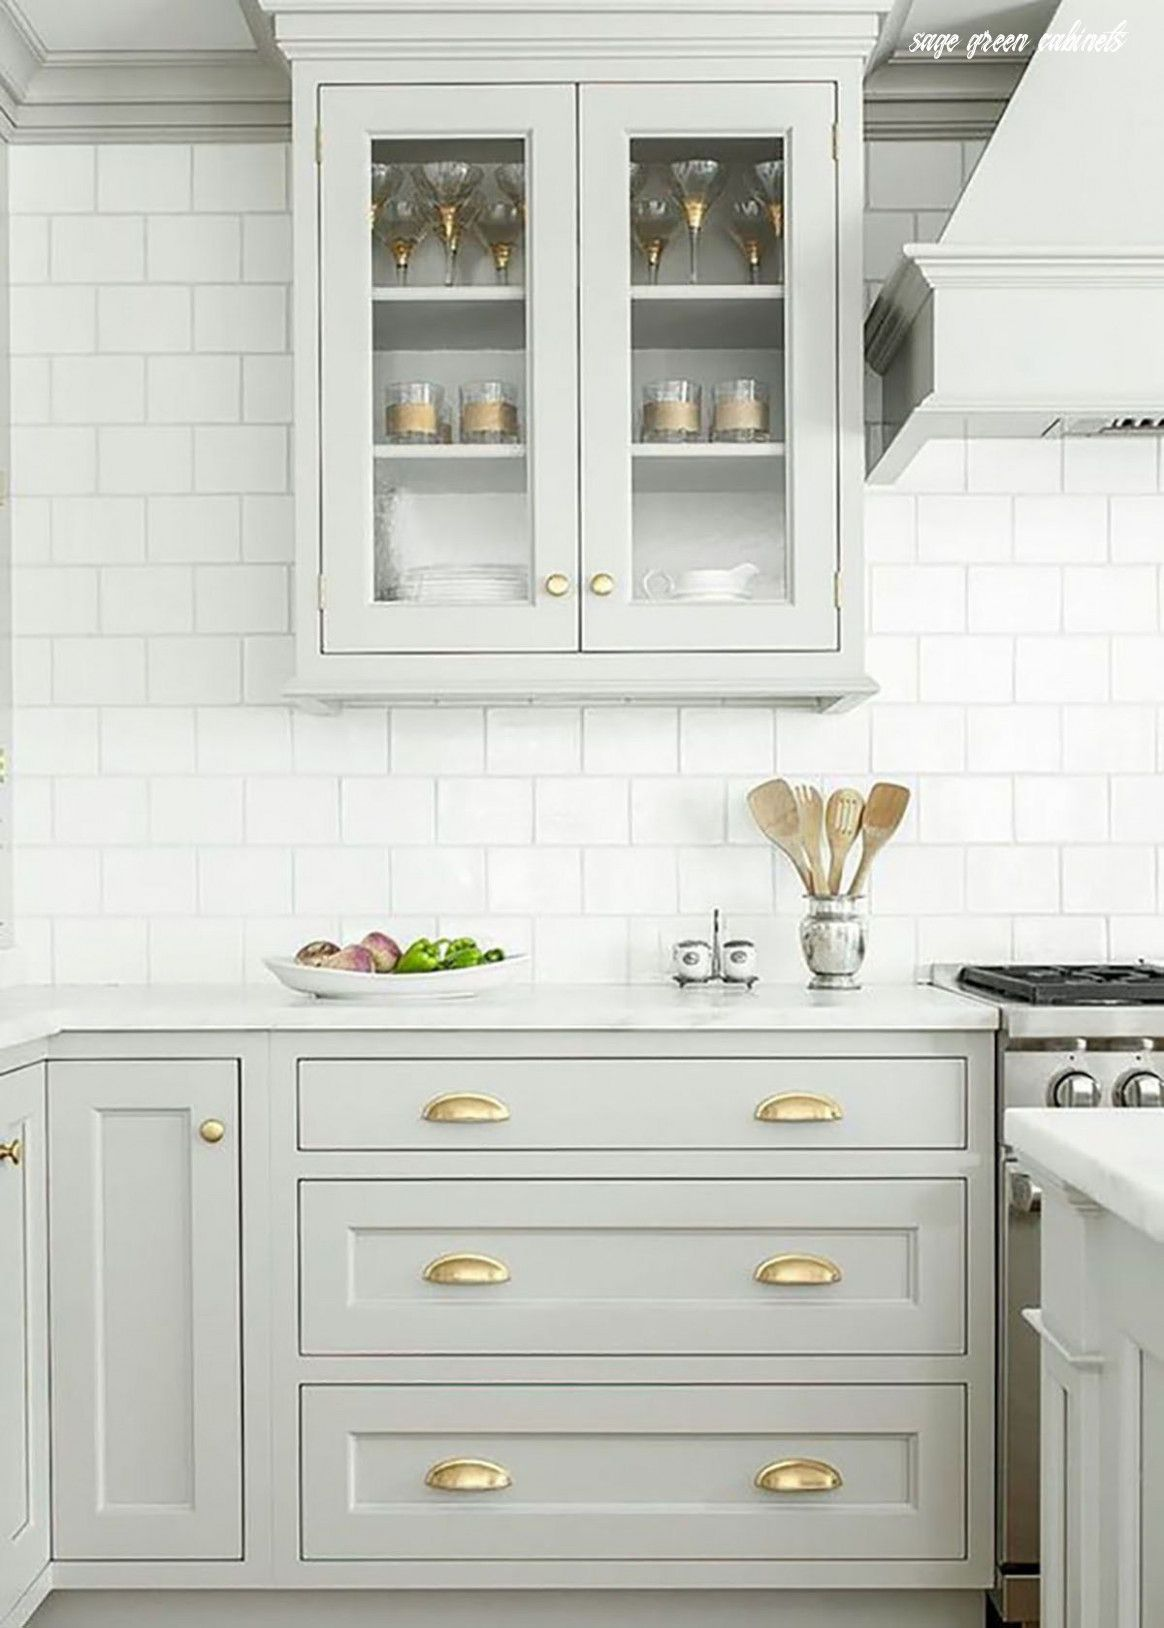 10 Important Life Lessons Sage Green Cabinets Taught Us -   19 sage green kitchen cabinets two tone ideas